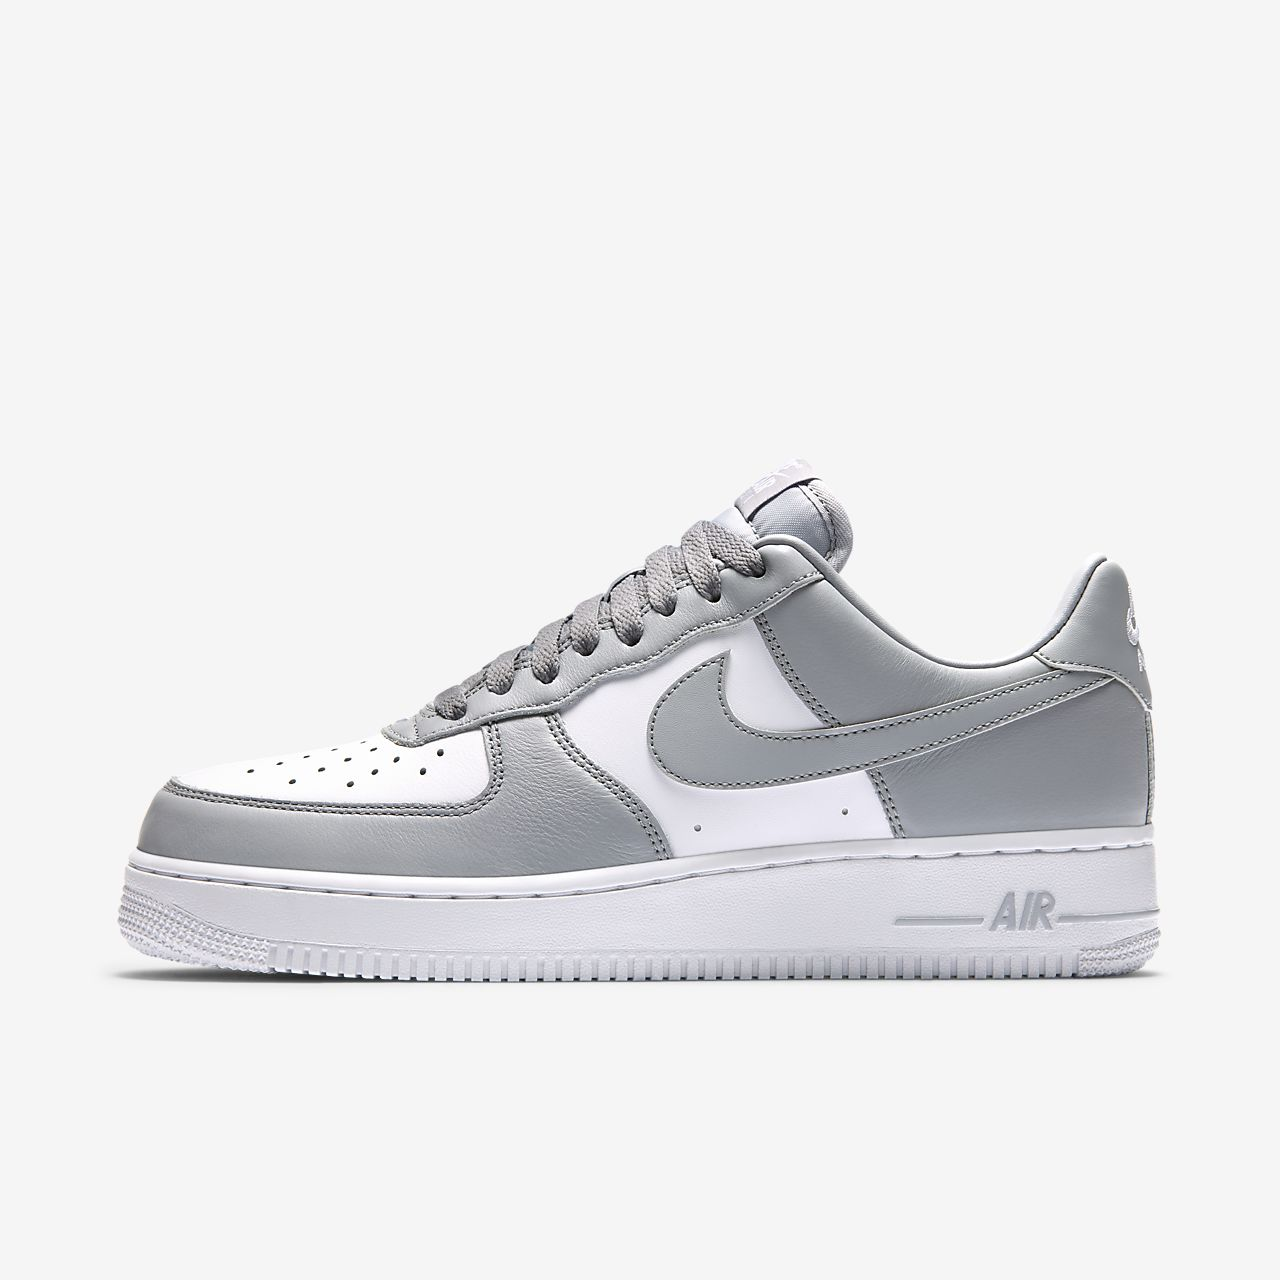 all white air force 1 low men's nz